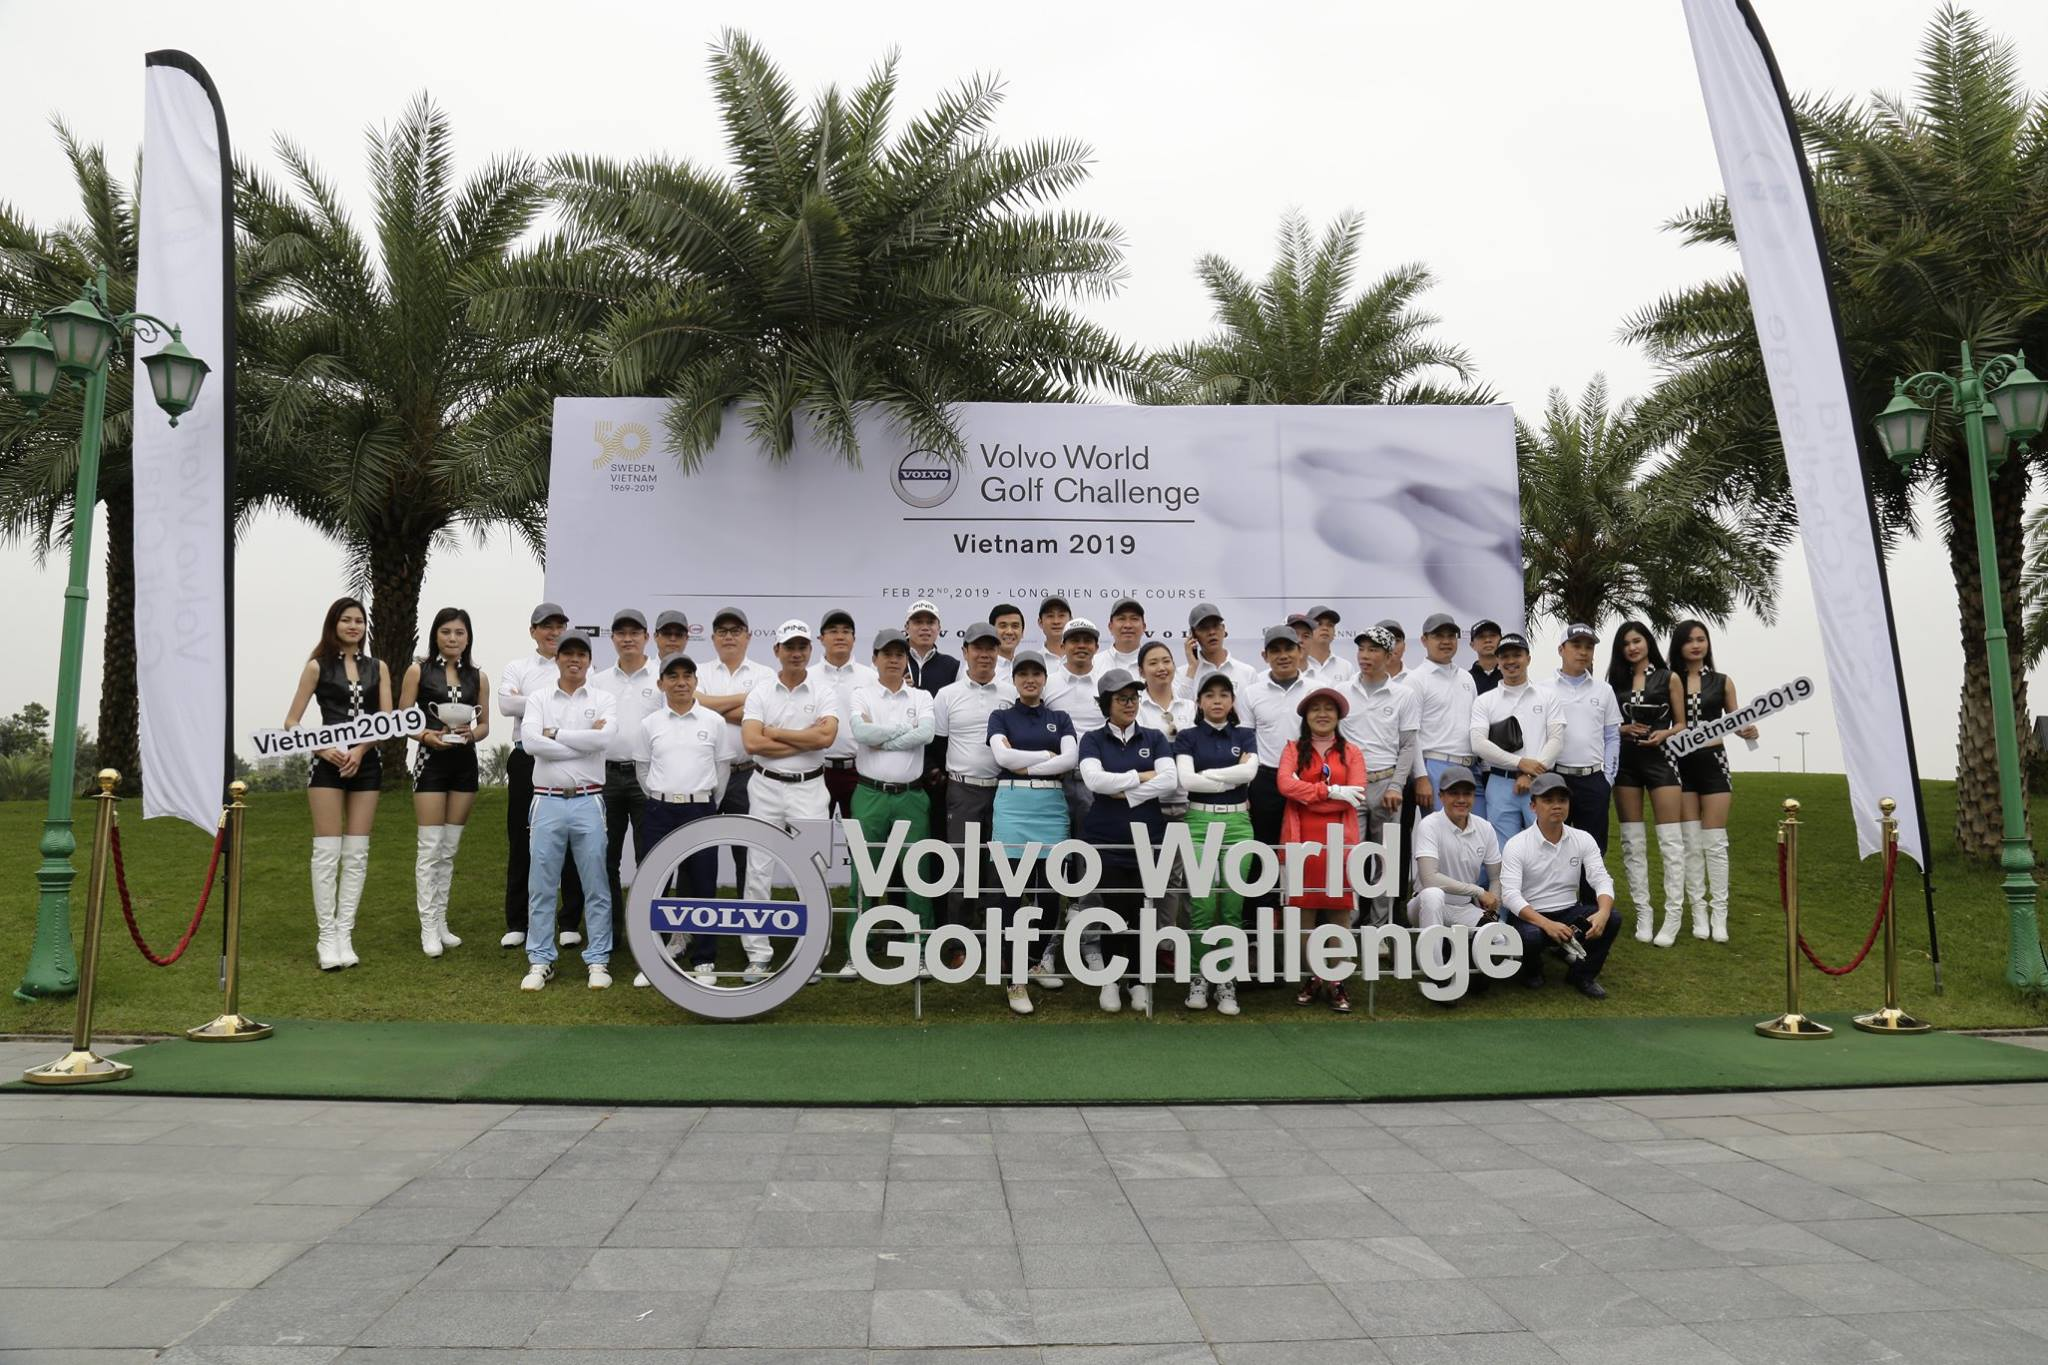 Volvo World Golf Challenge - Vietnam 2019